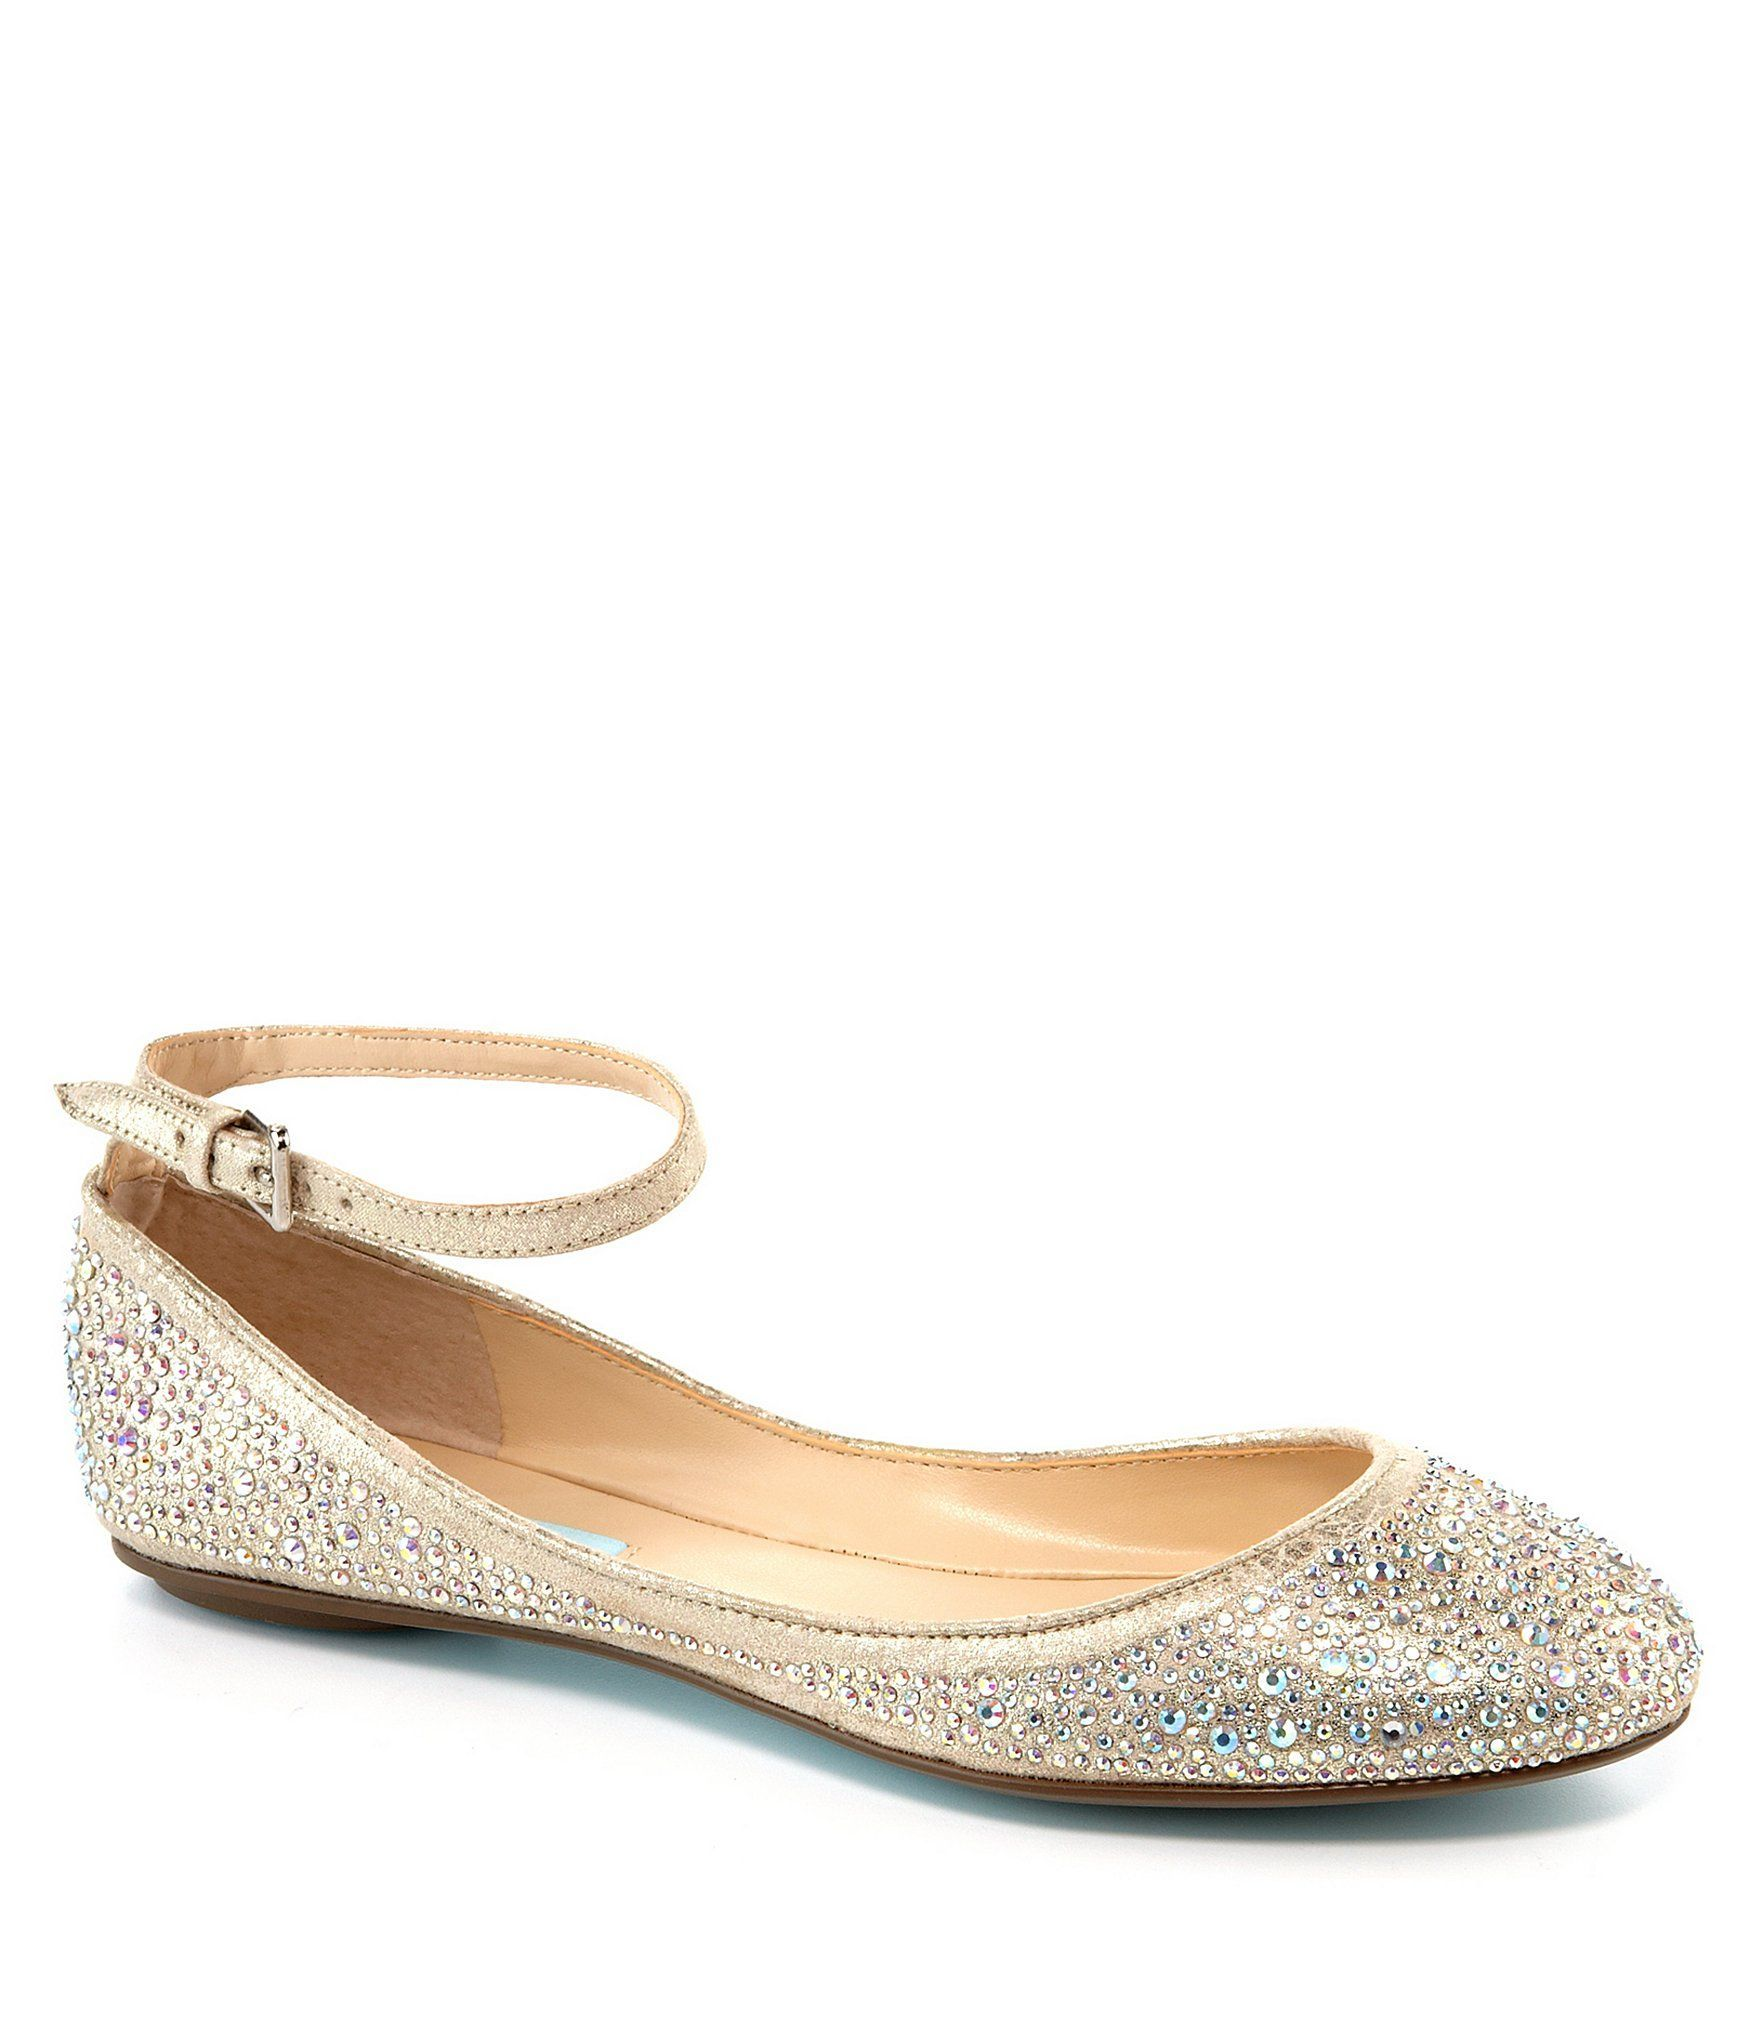 51ebdd8cc70f 99 Shop for Blue by Betsey Johnson Joy Jeweled Ankle-Strap Flats at  Dillards.